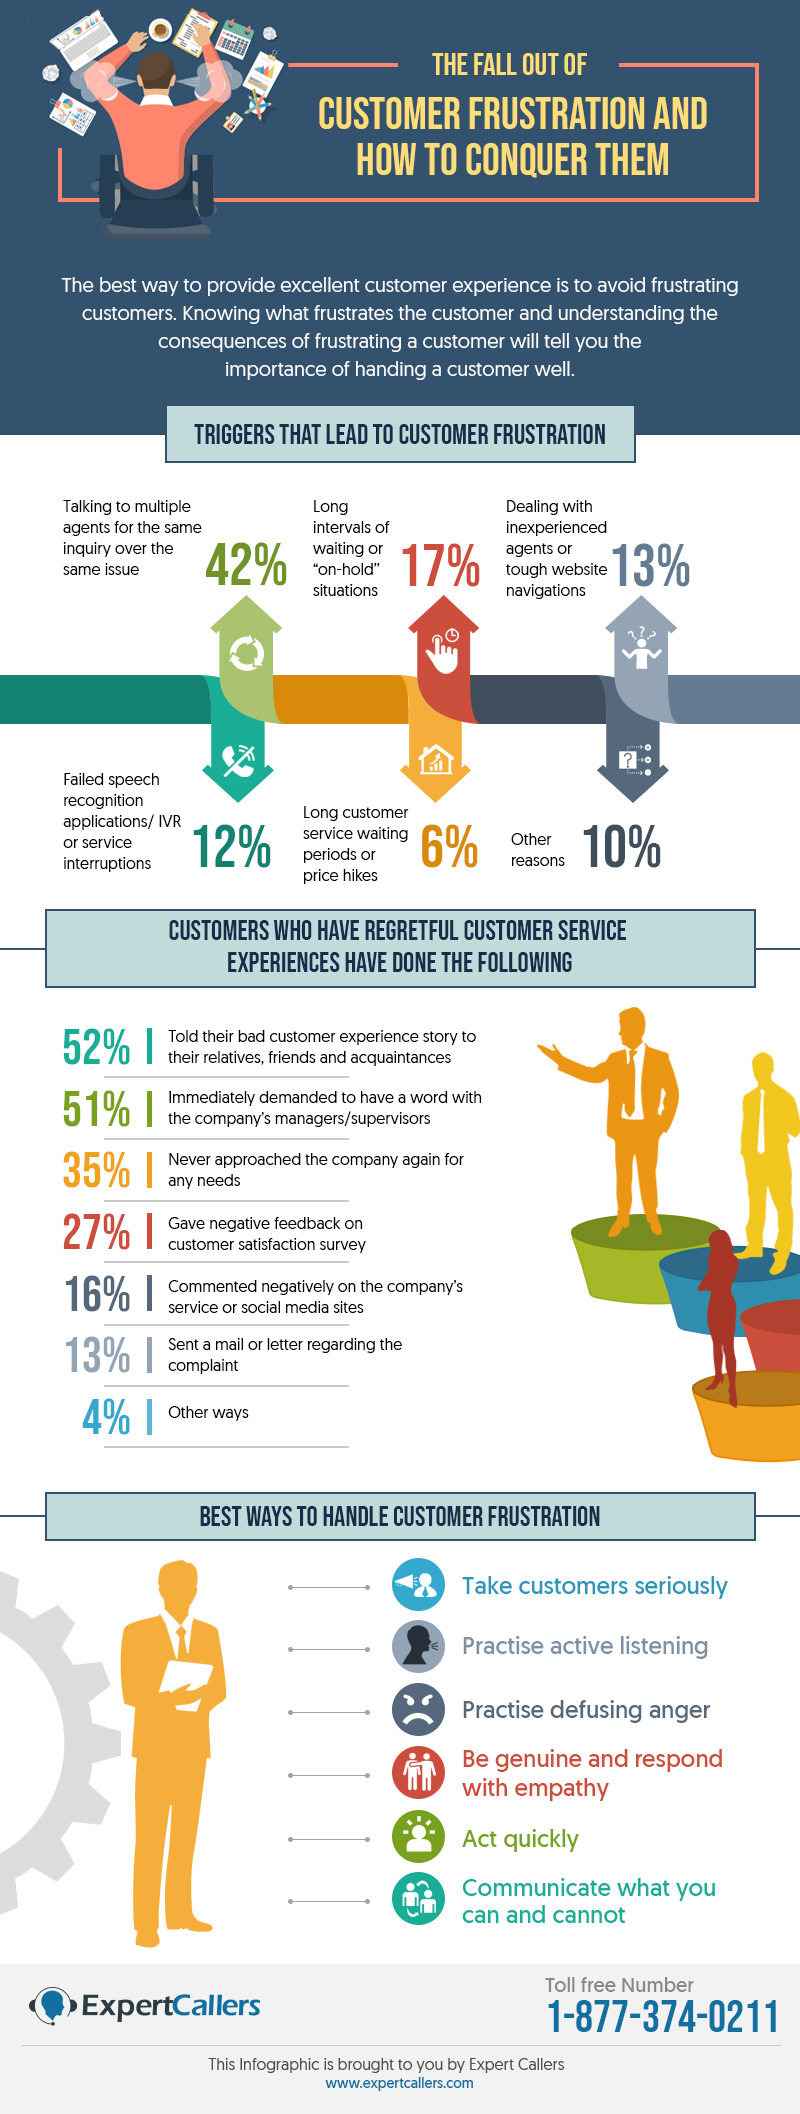 The Fall Out of Customer Frustration and How to Conquer Them